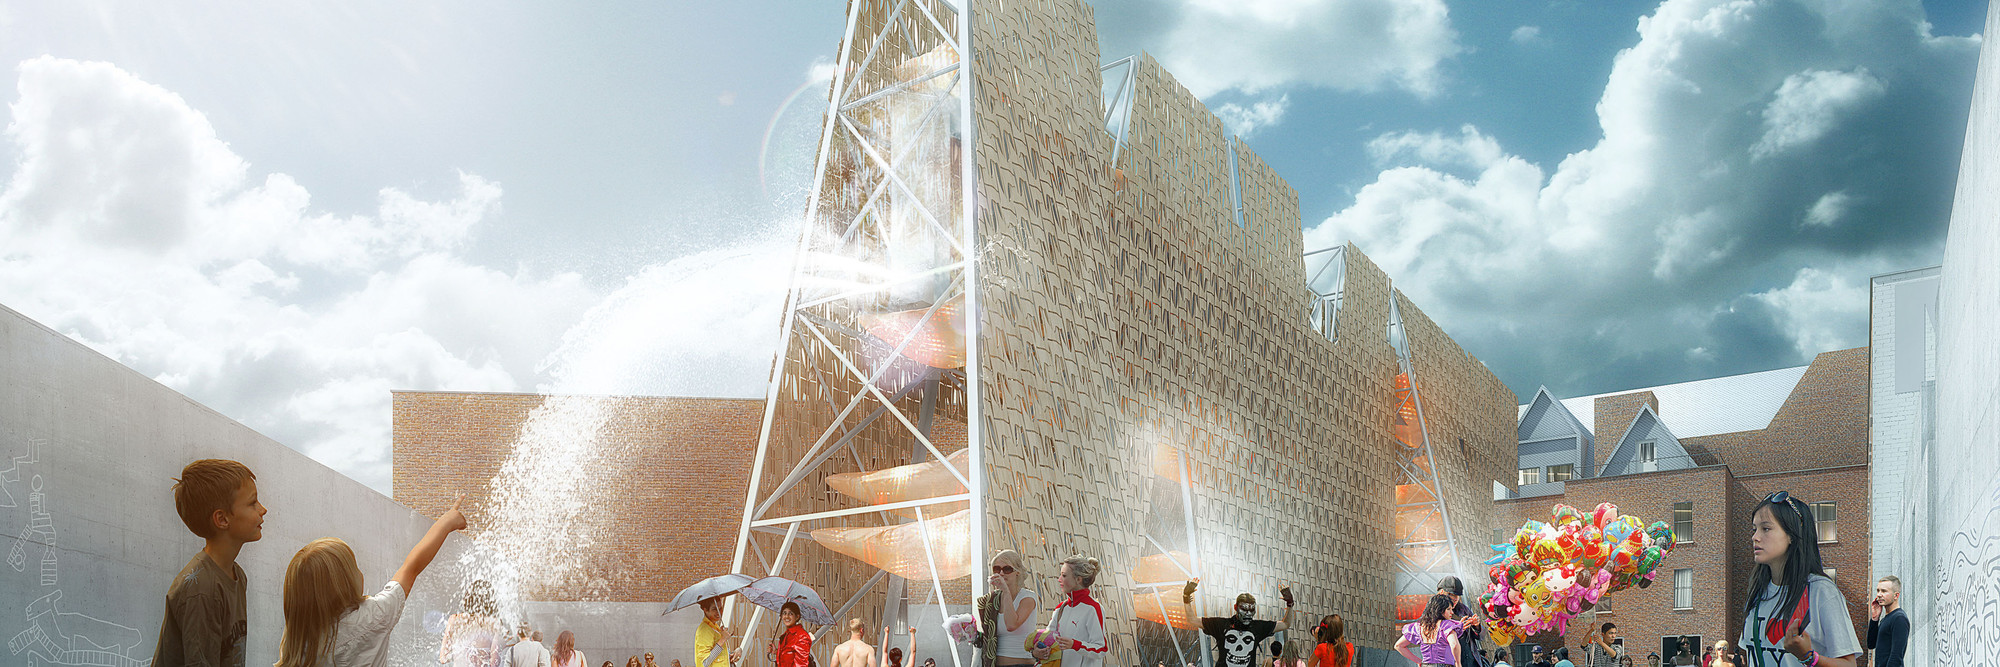 Coda. Party Wall (rendering). 2013 Young Architects Program, MoMA PS1, New York, winner